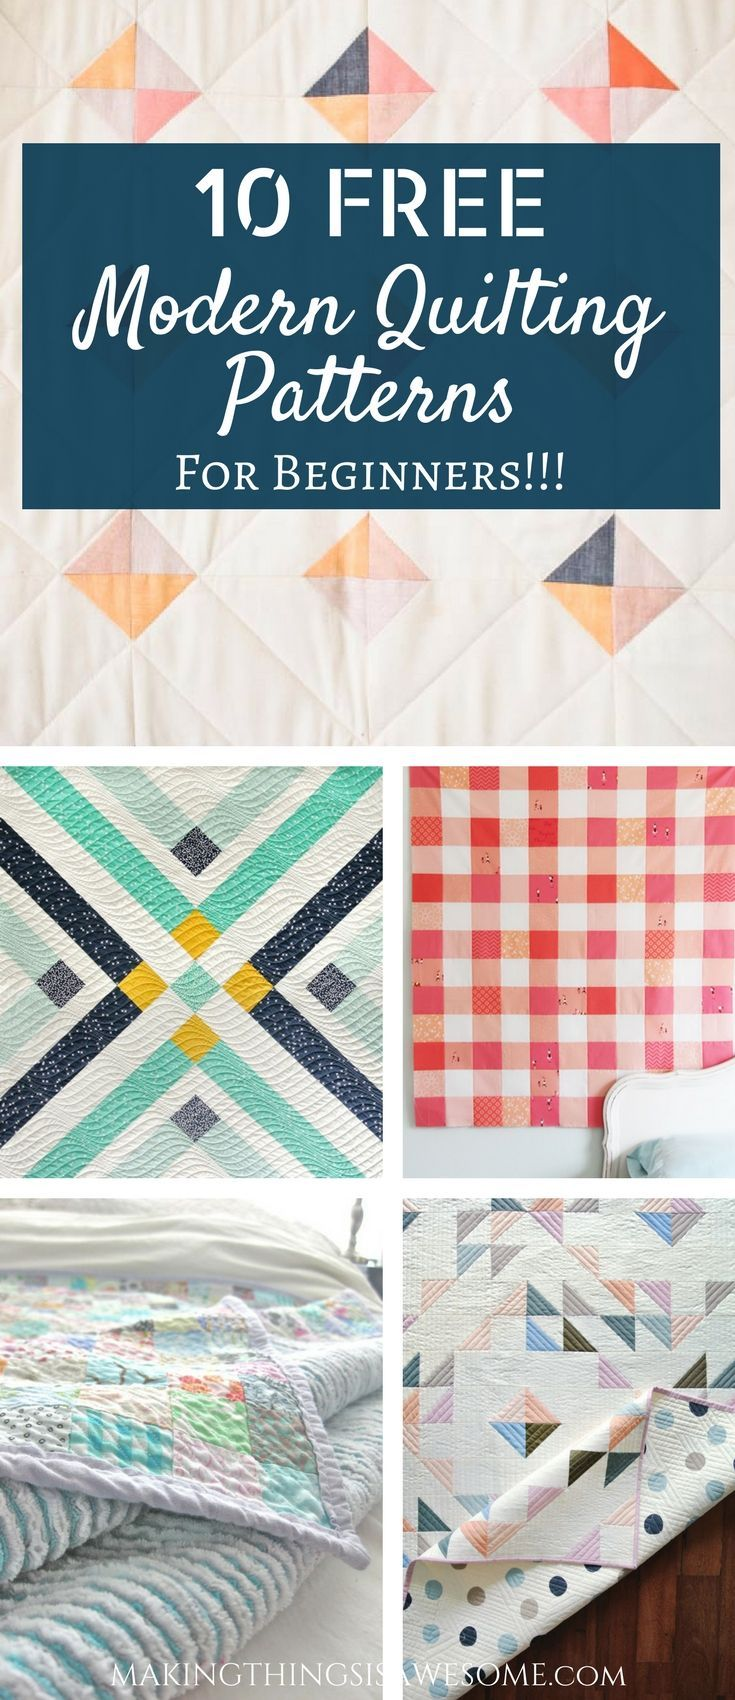 10 Free Modern Quilt Patterns For Beginners Making Things Is Awesome Beginner Quilt Patterns Free Quilt Patterns Free Quilt Patterns